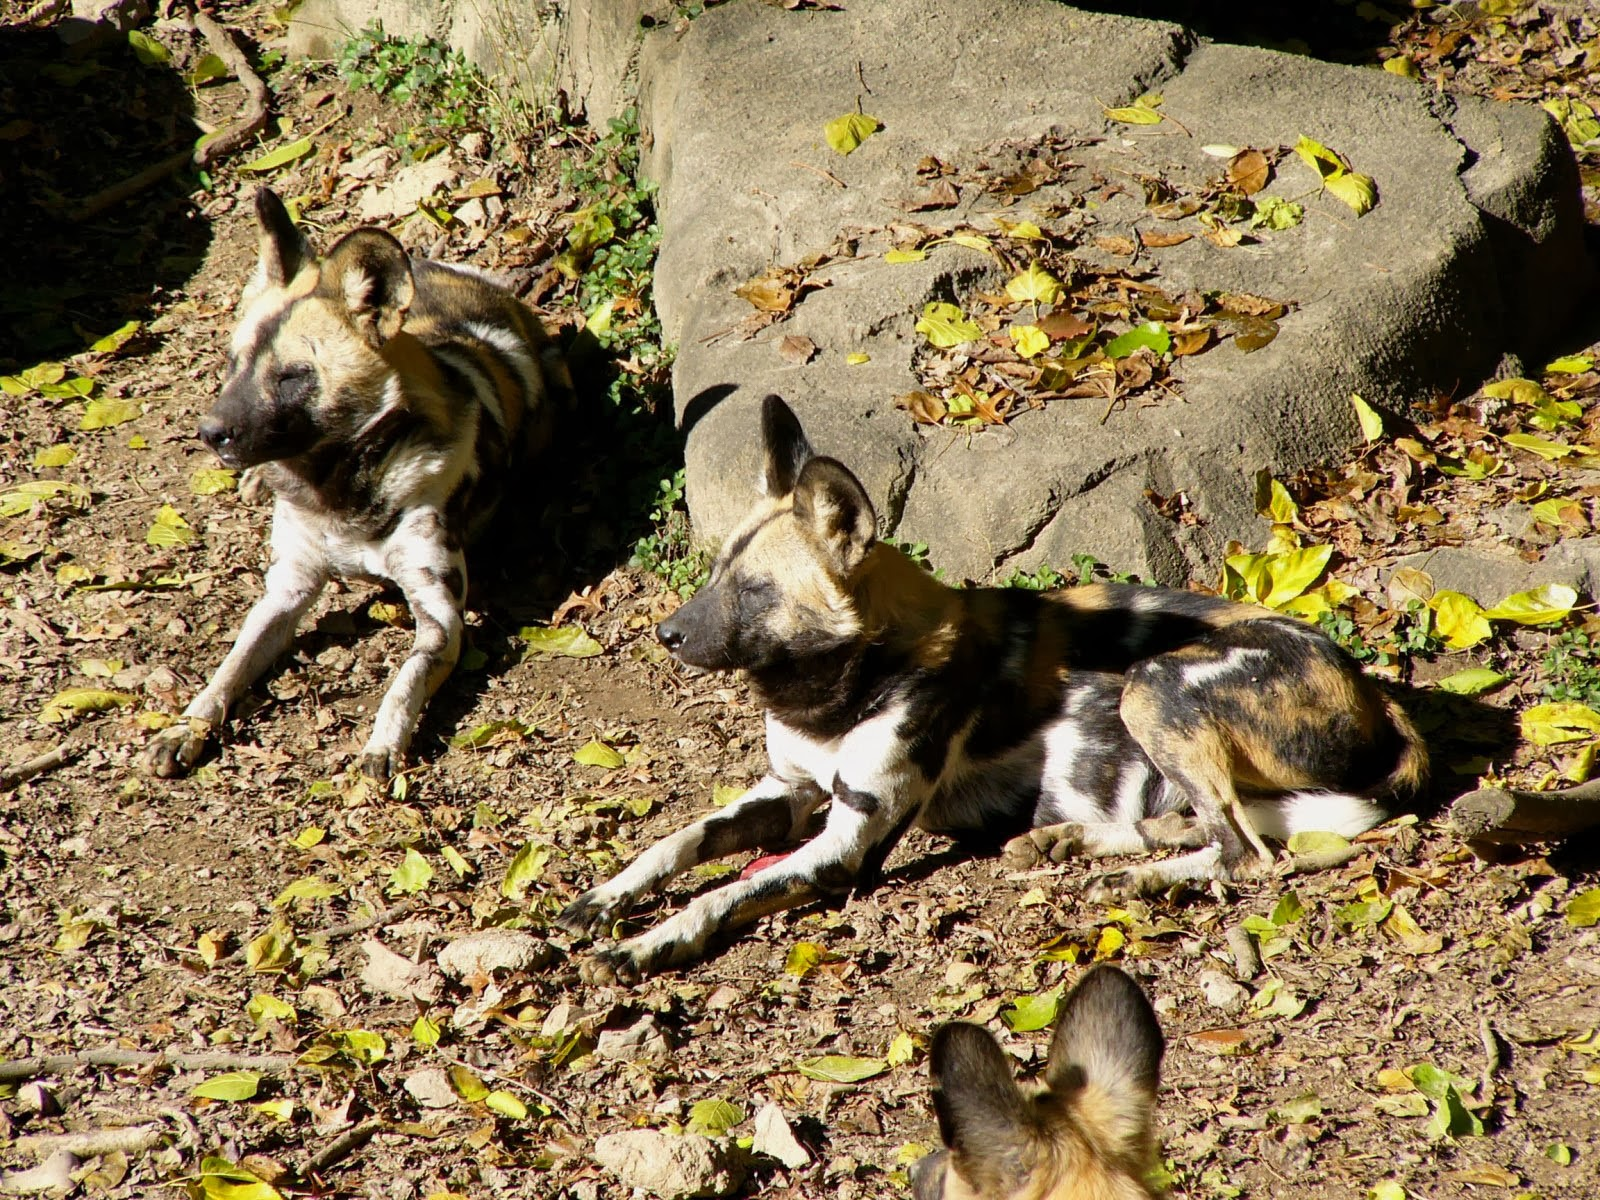 Any One 1 6 Jaeger Birds Hd Wallpapers: Any One 1-6: African Wild Dog HD Wallpapers